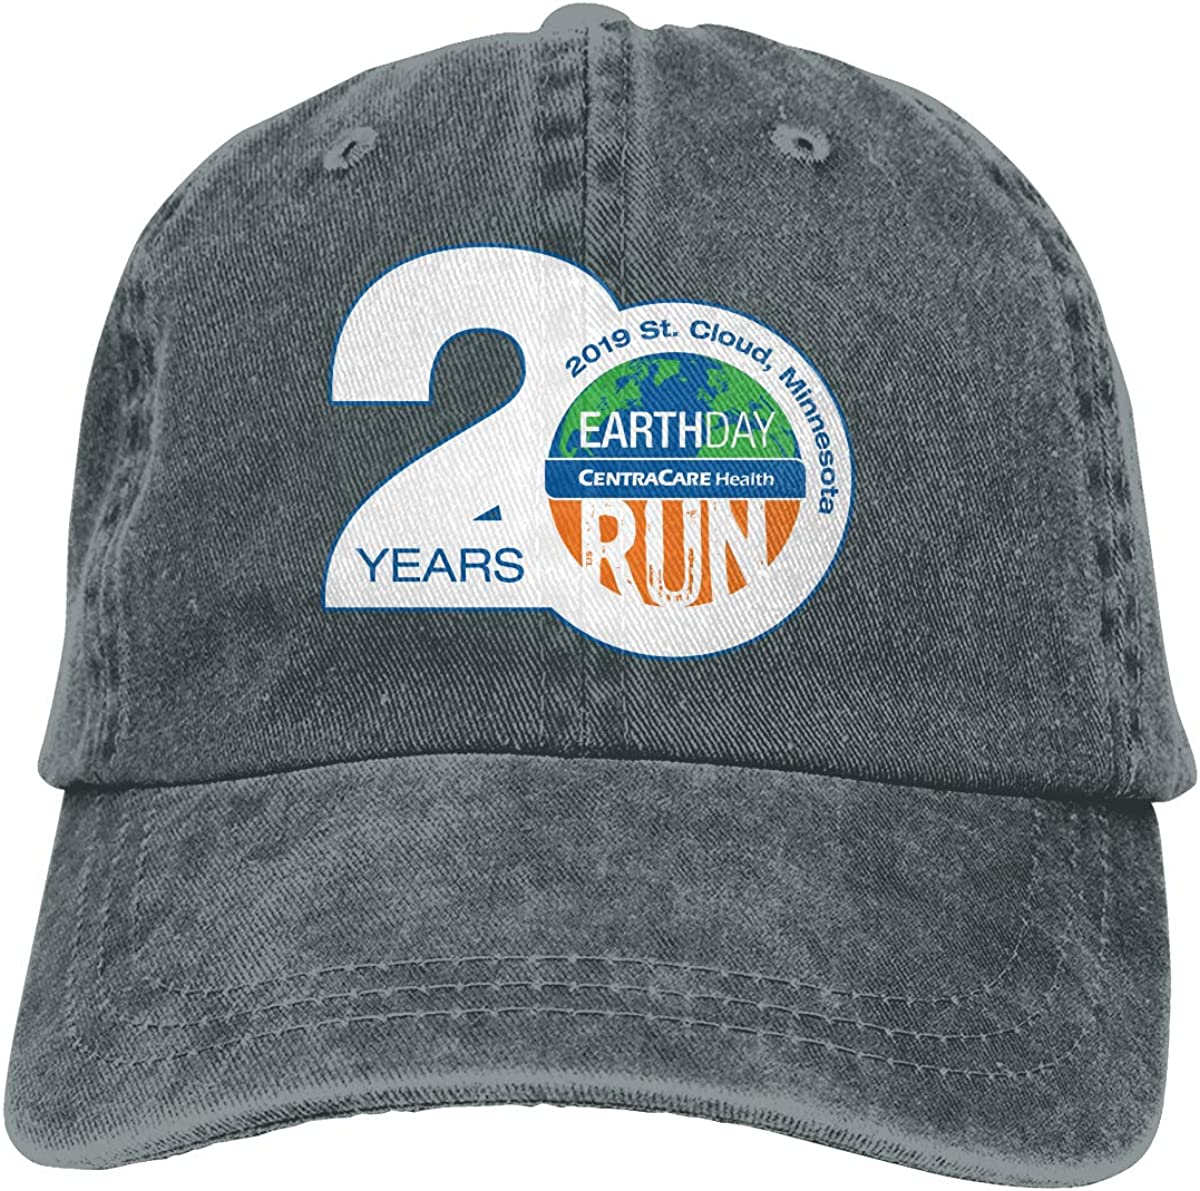 Unisex 2019 Earth Day Run Results Vintage Washed Dad Hat Popular Adjustable Baseball Cap